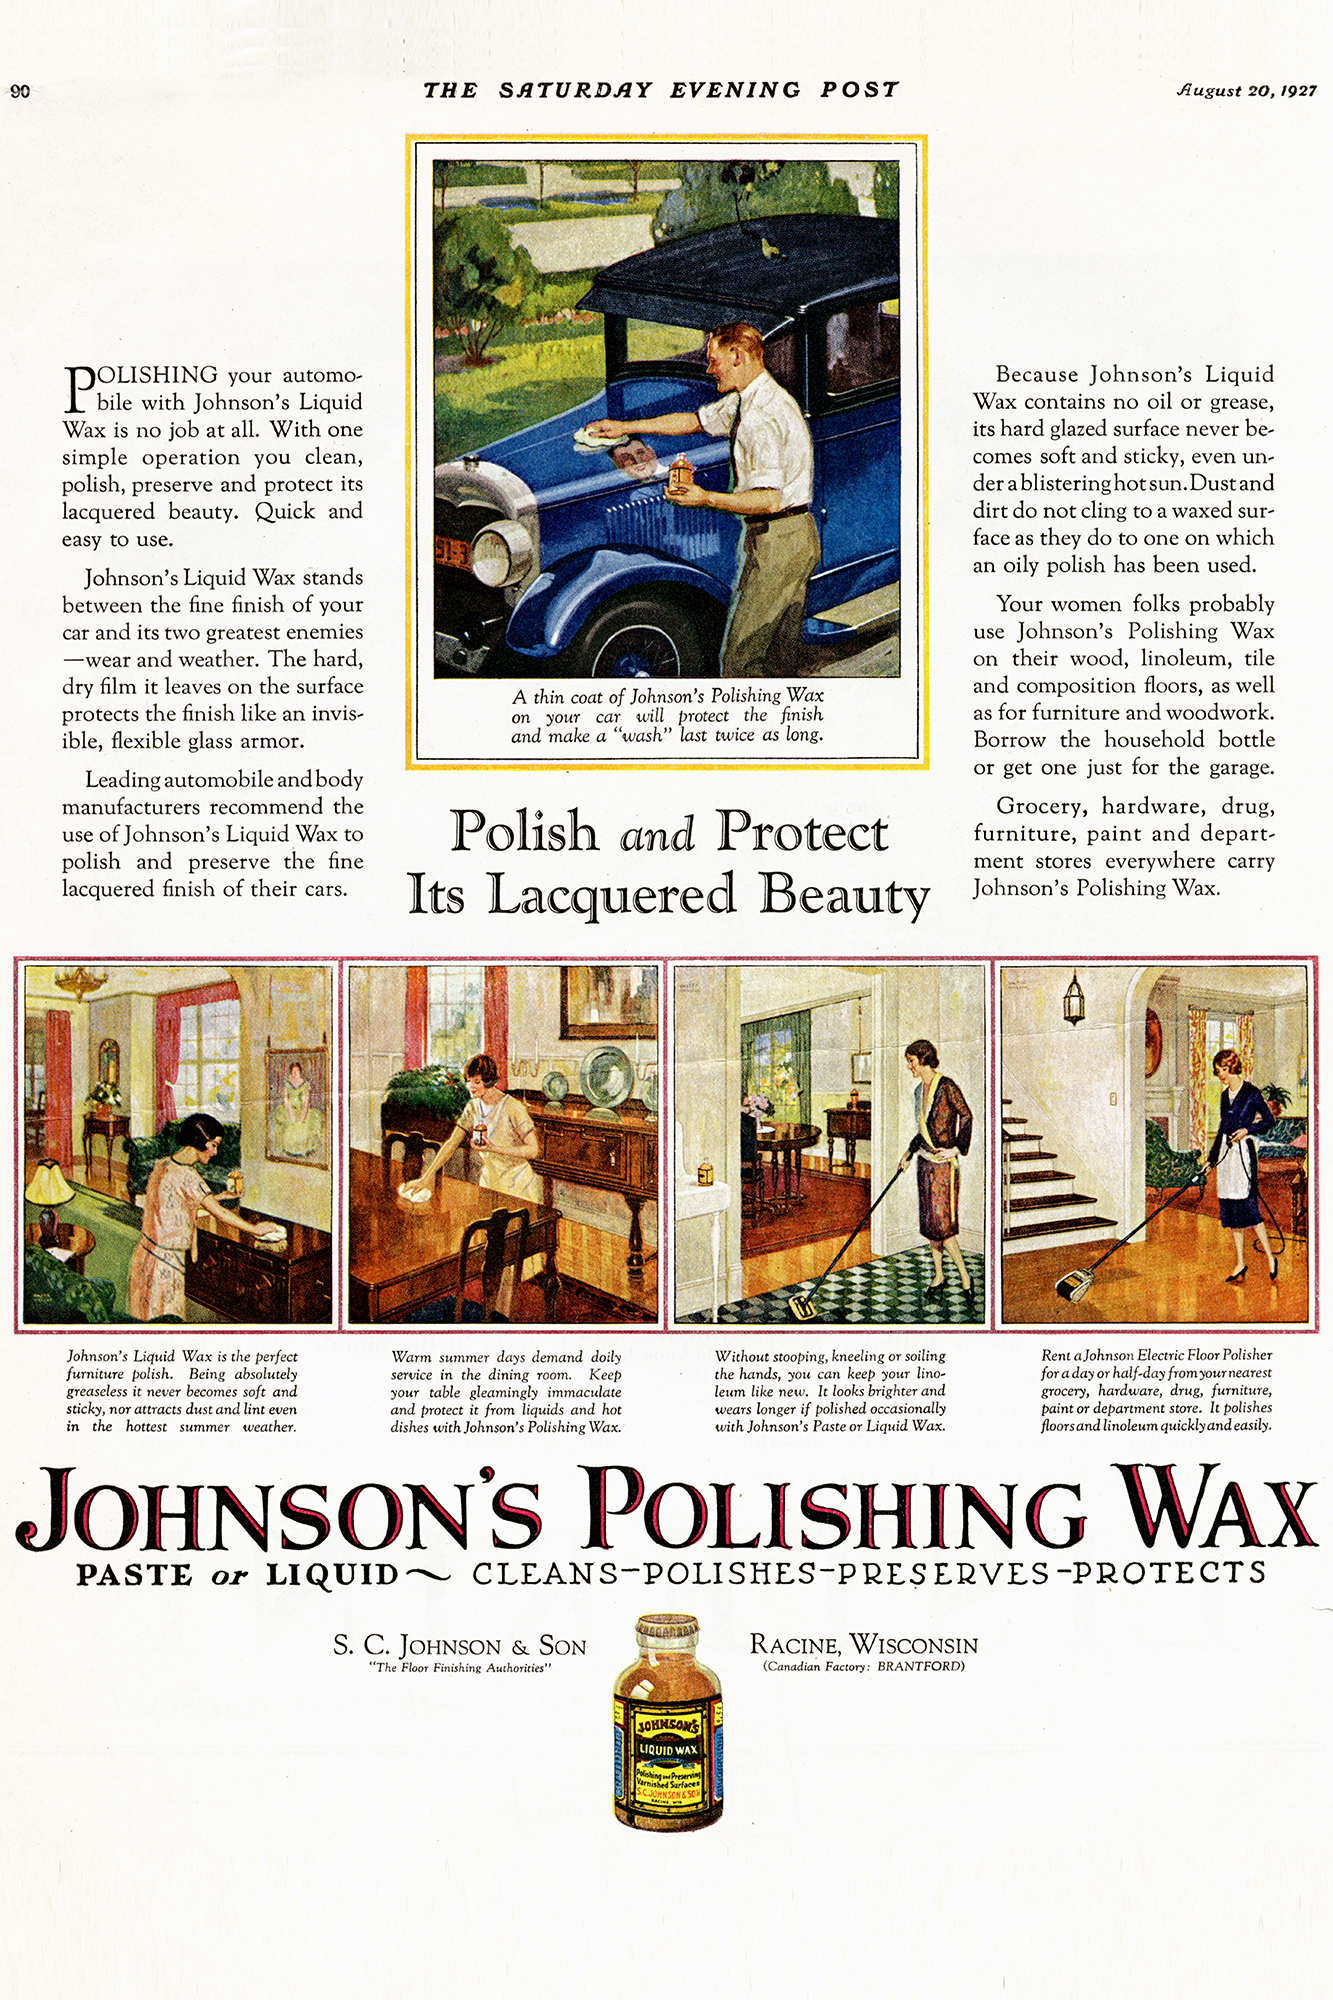 Anuncio publicitario de la cera Johnson en el Saturday Evening Post, 1927